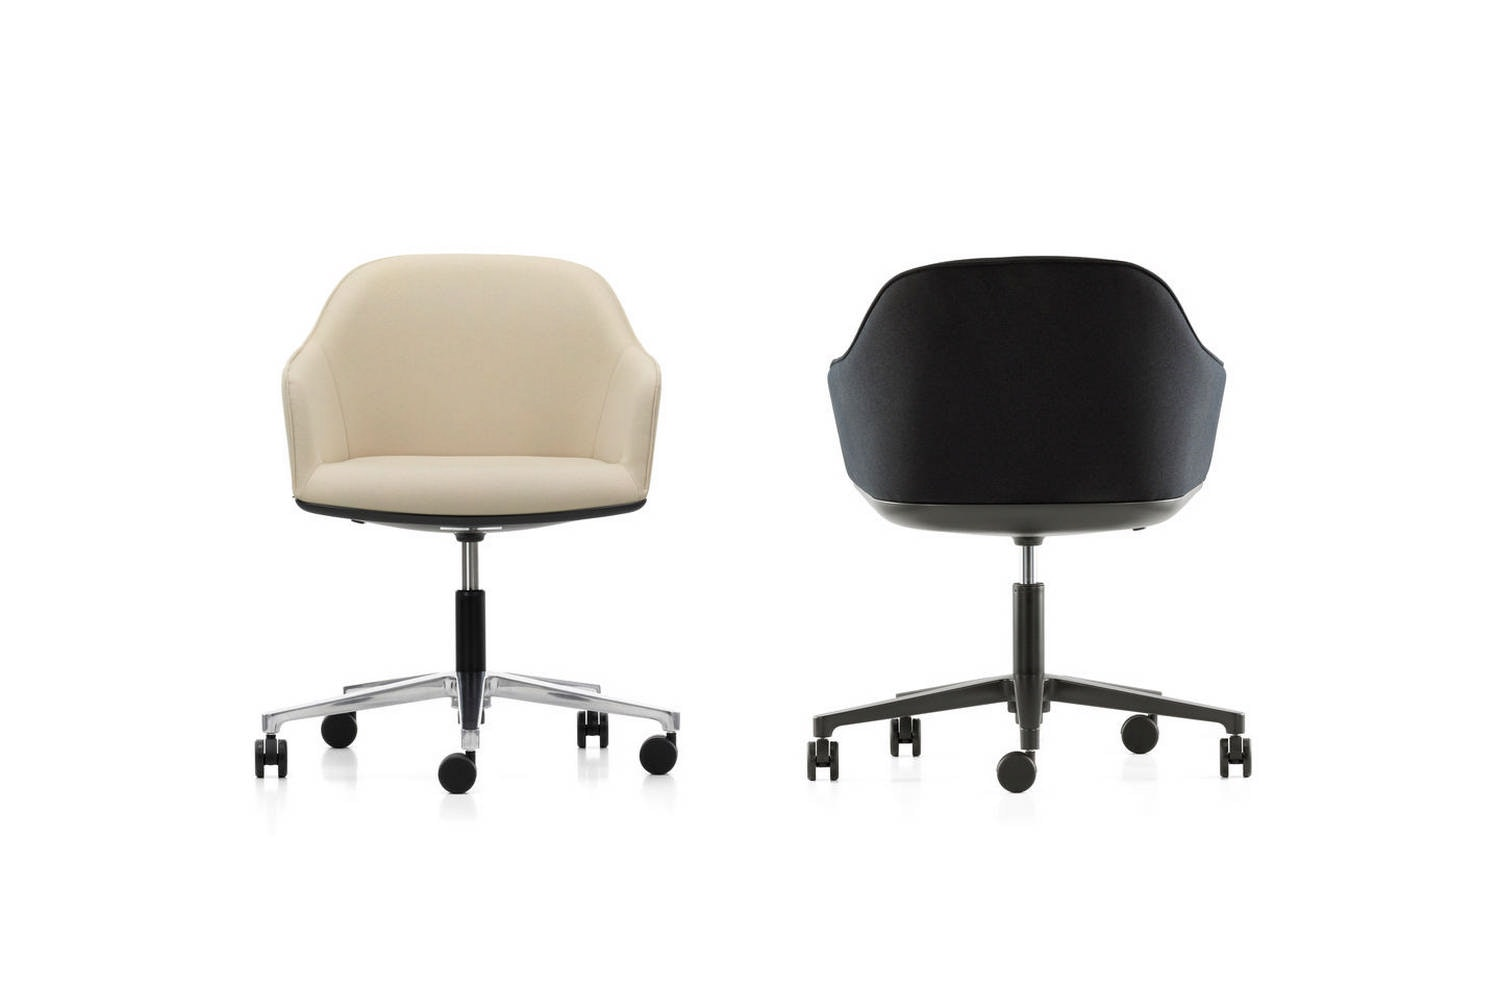 Softshell Chair with Five-Star Base by Ronan & Erwan Bouroullec for Vitra